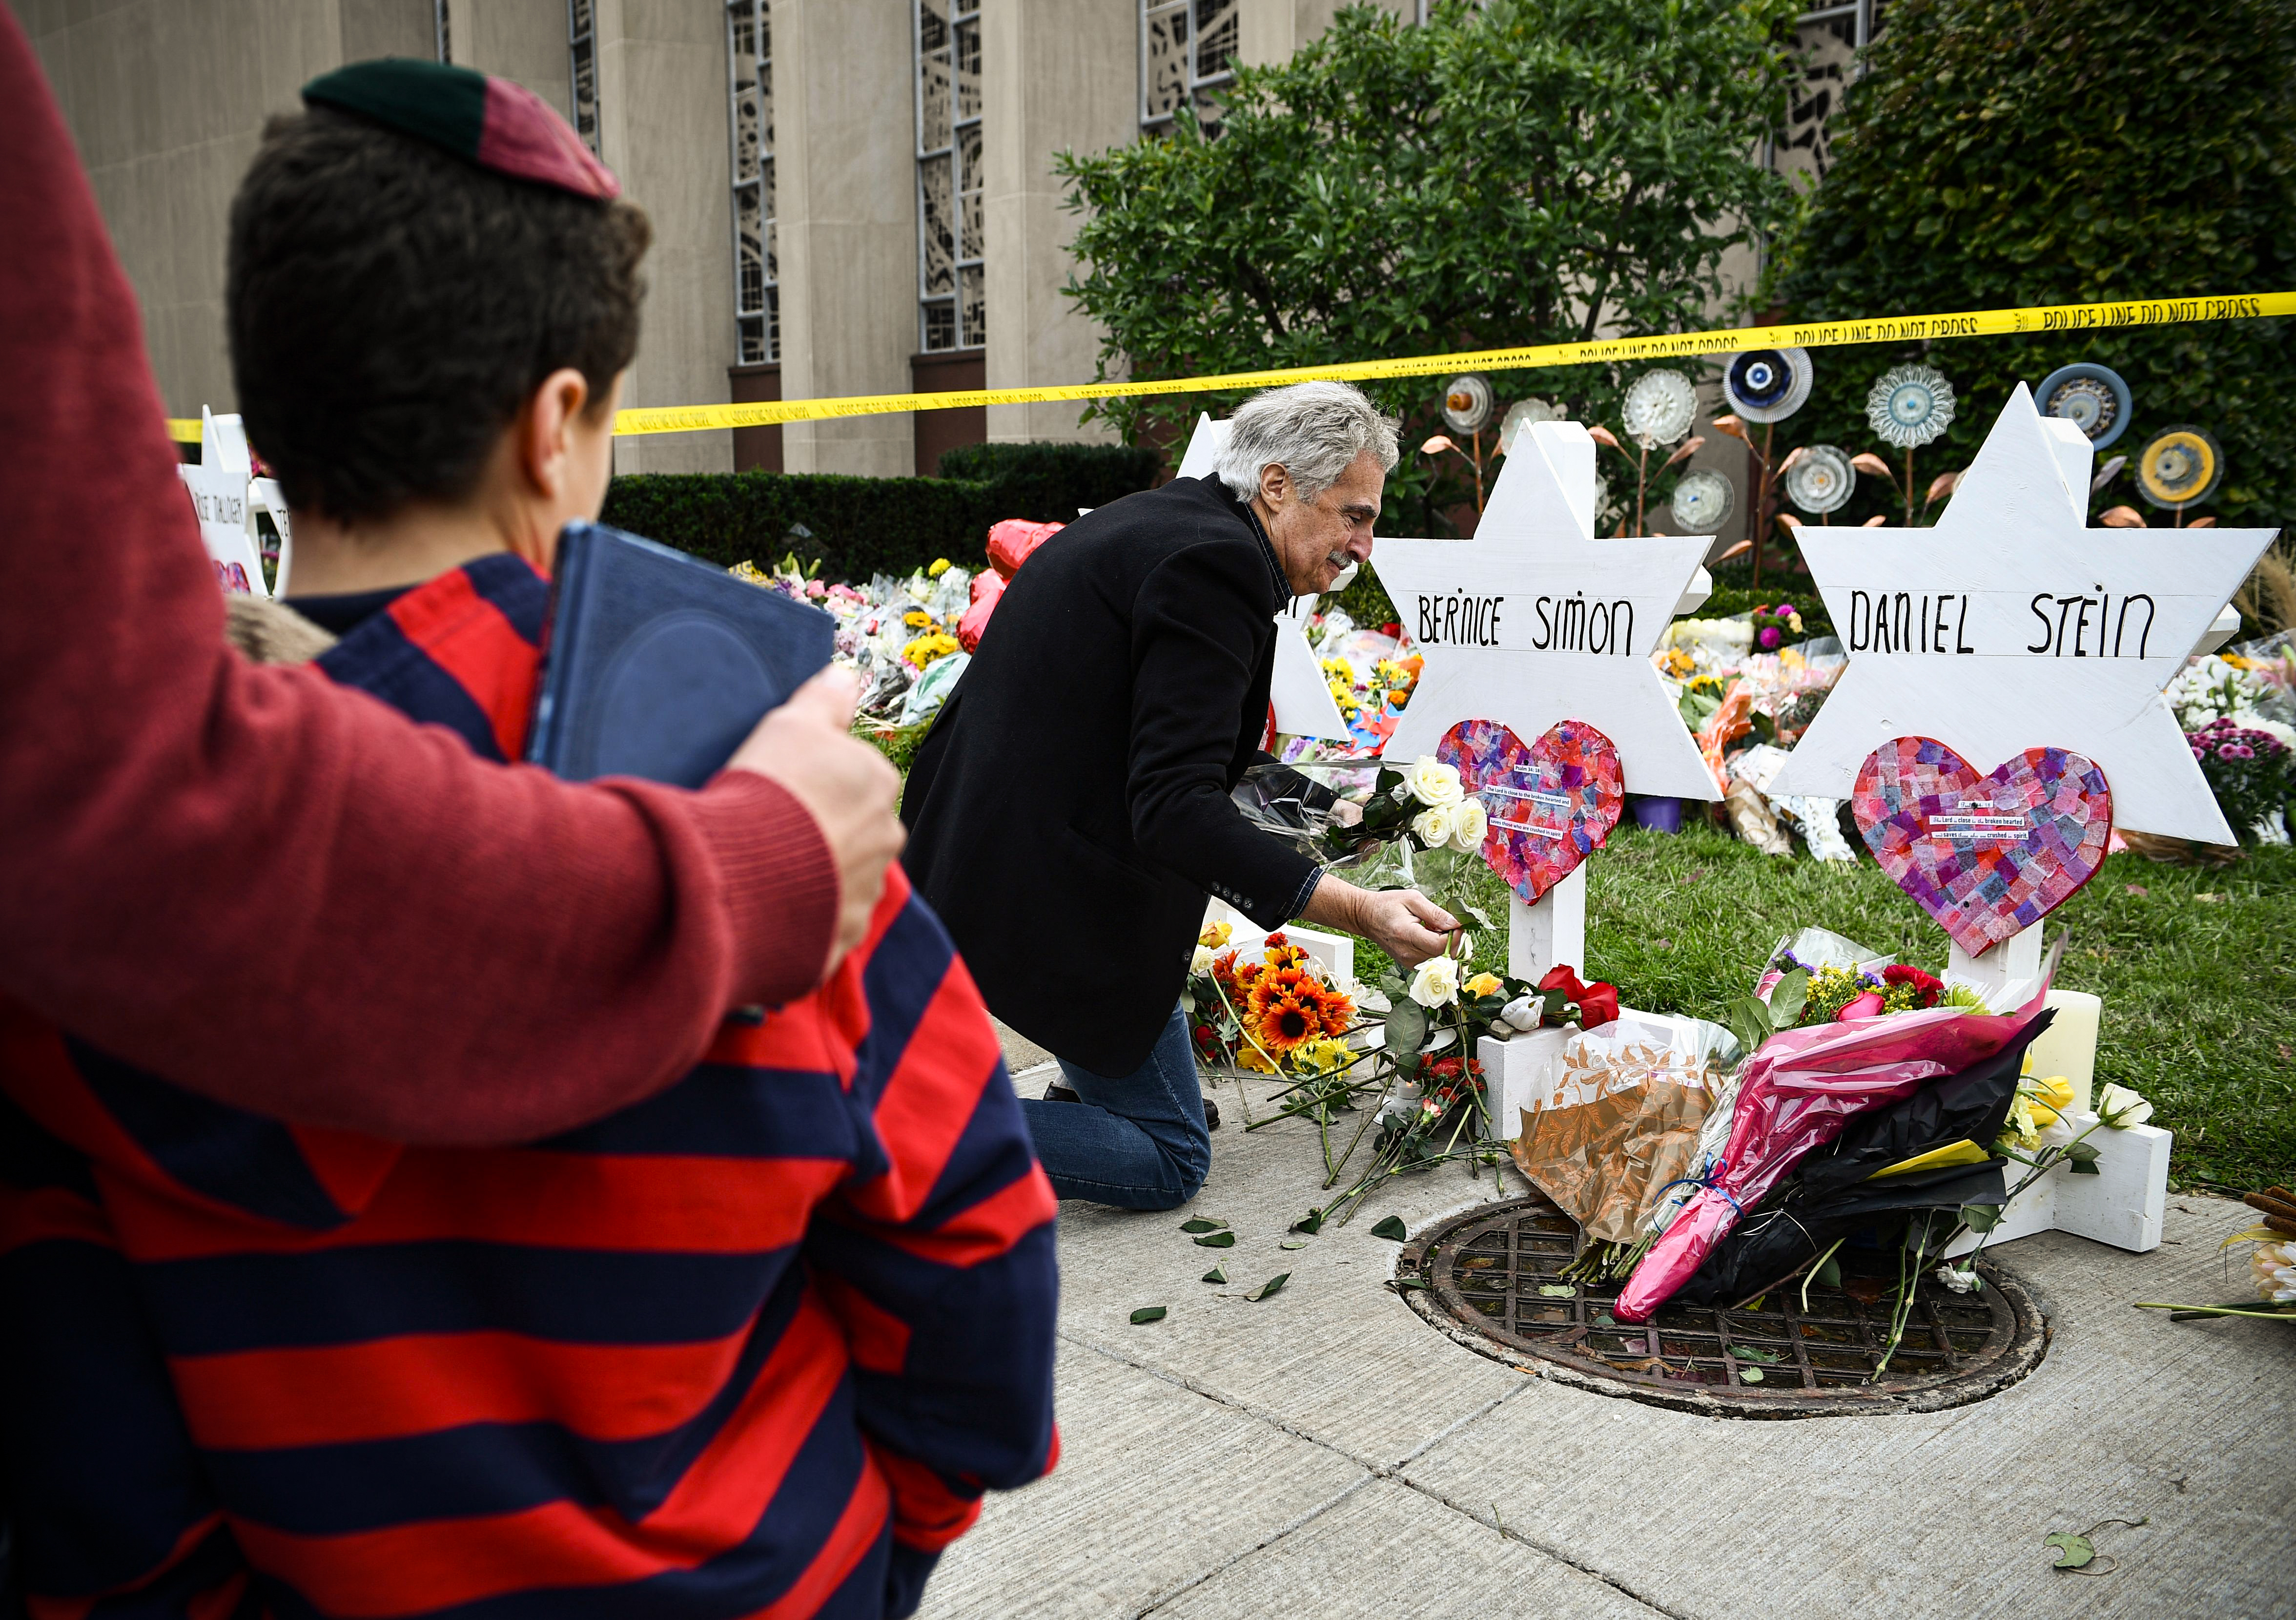 People leave flowers and other mementos at a memorial outside Pittsburgh's Tree of Life synagogue.